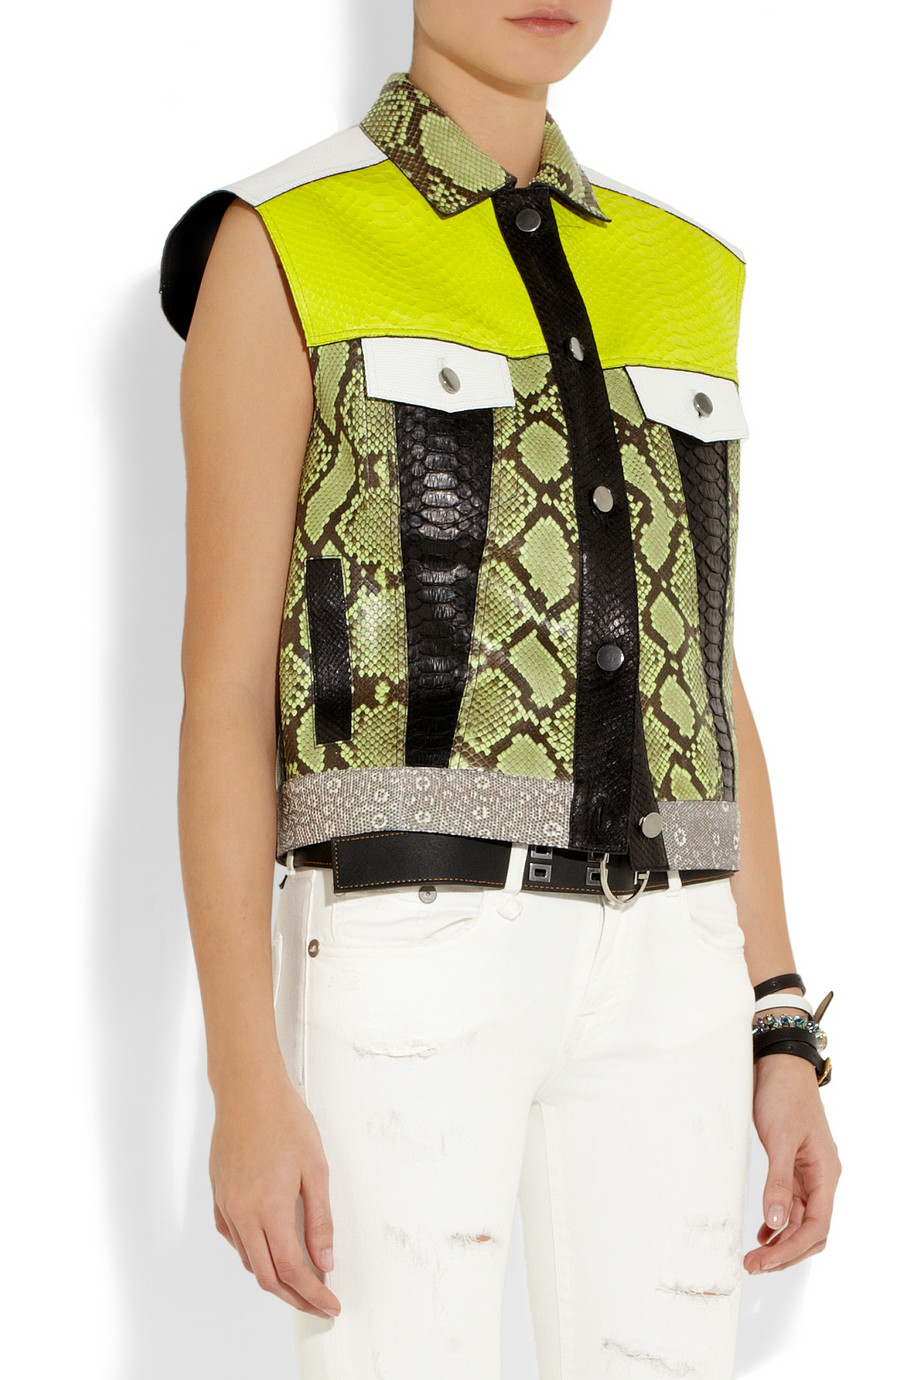 Proenza schouler rubberized python and lizard vest – 50% at the outnet.com